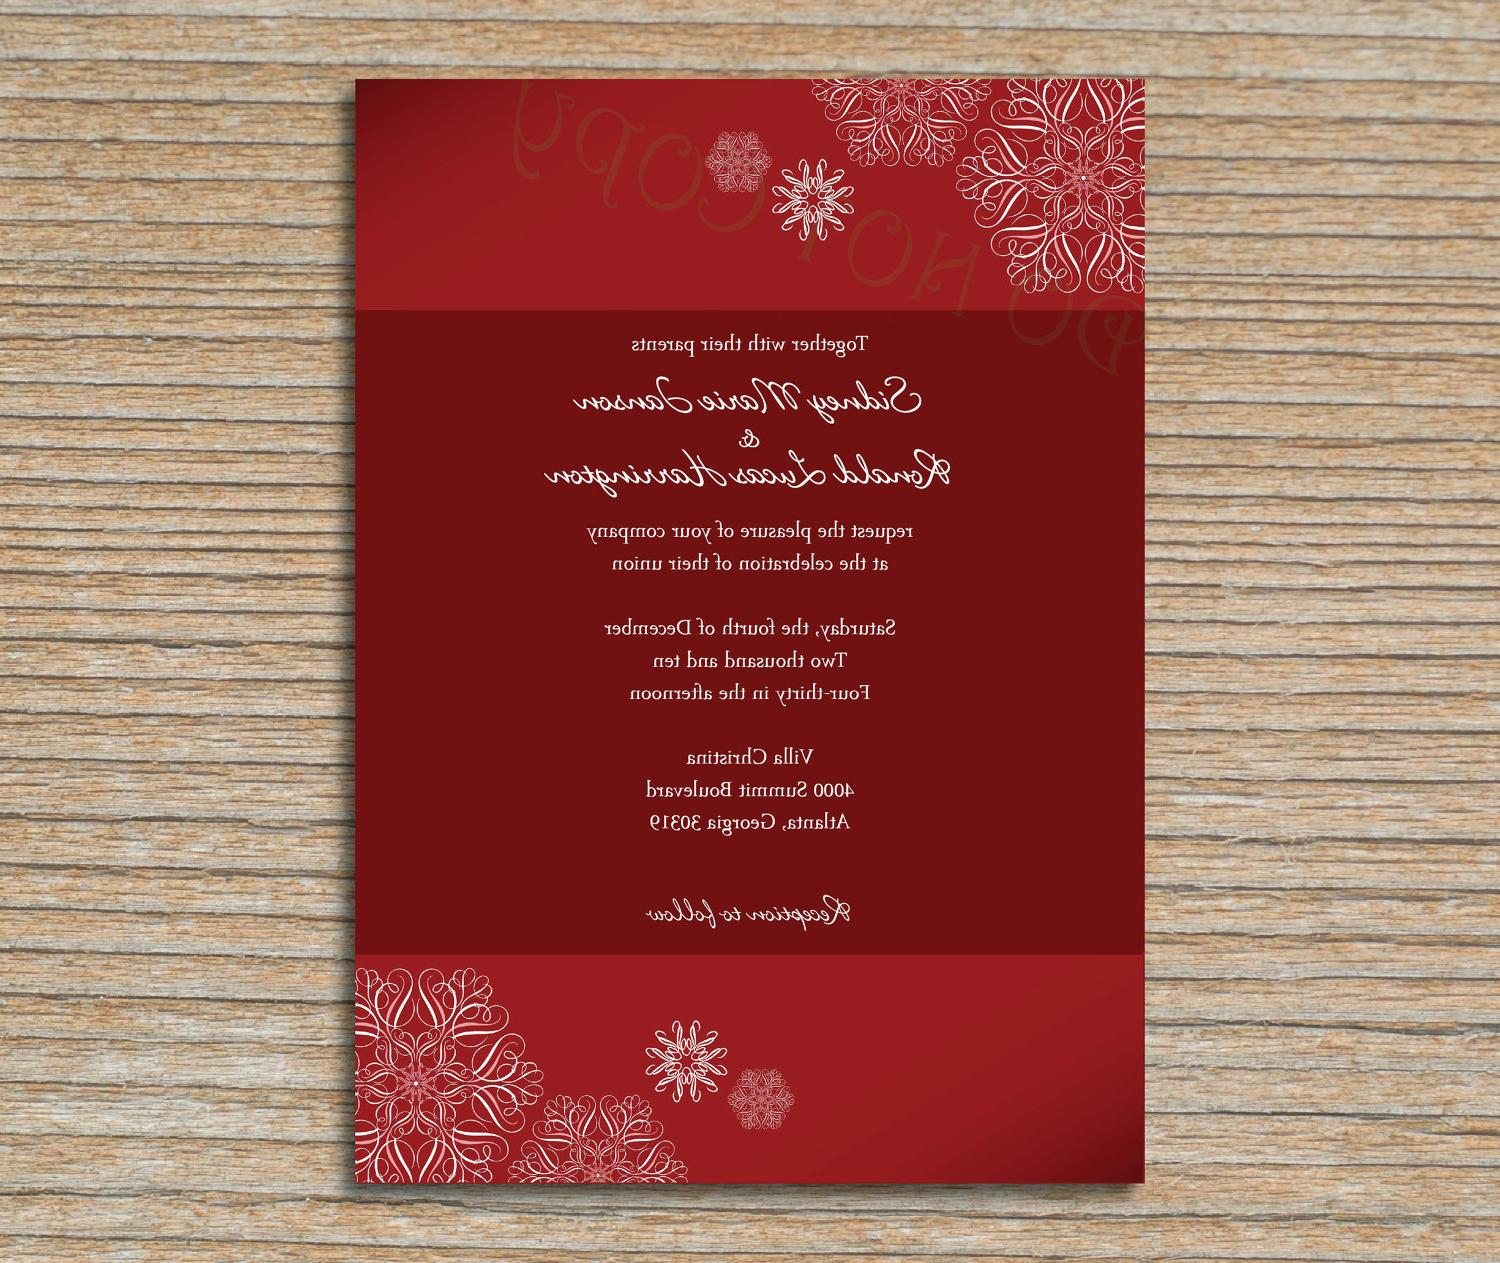 Wedding Invitation - Snowflakes in Red and White - Winter Holiday or